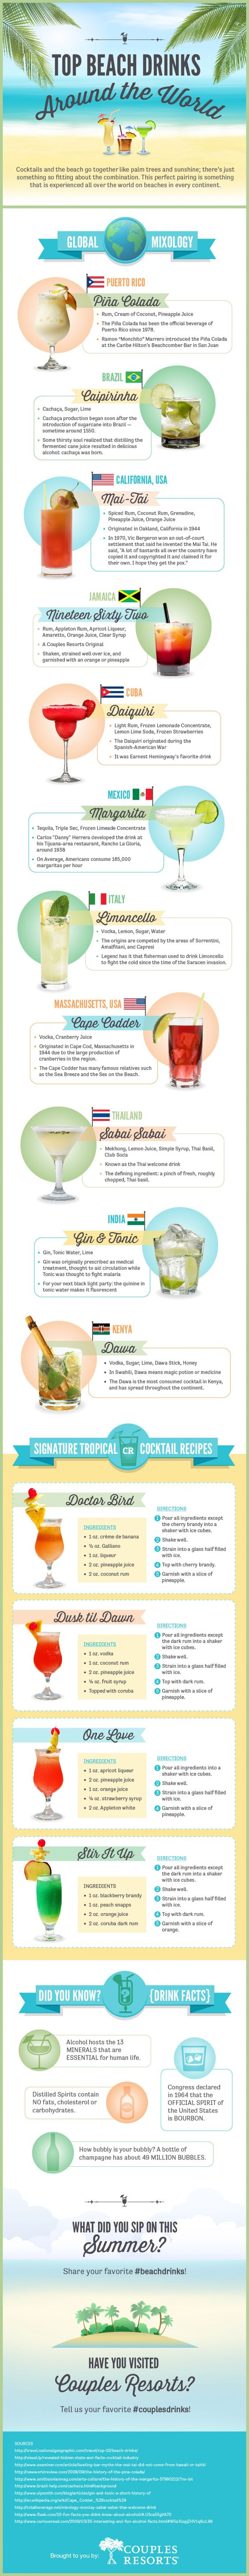 Top Beach Drinks Around the World by Couples Resorts.